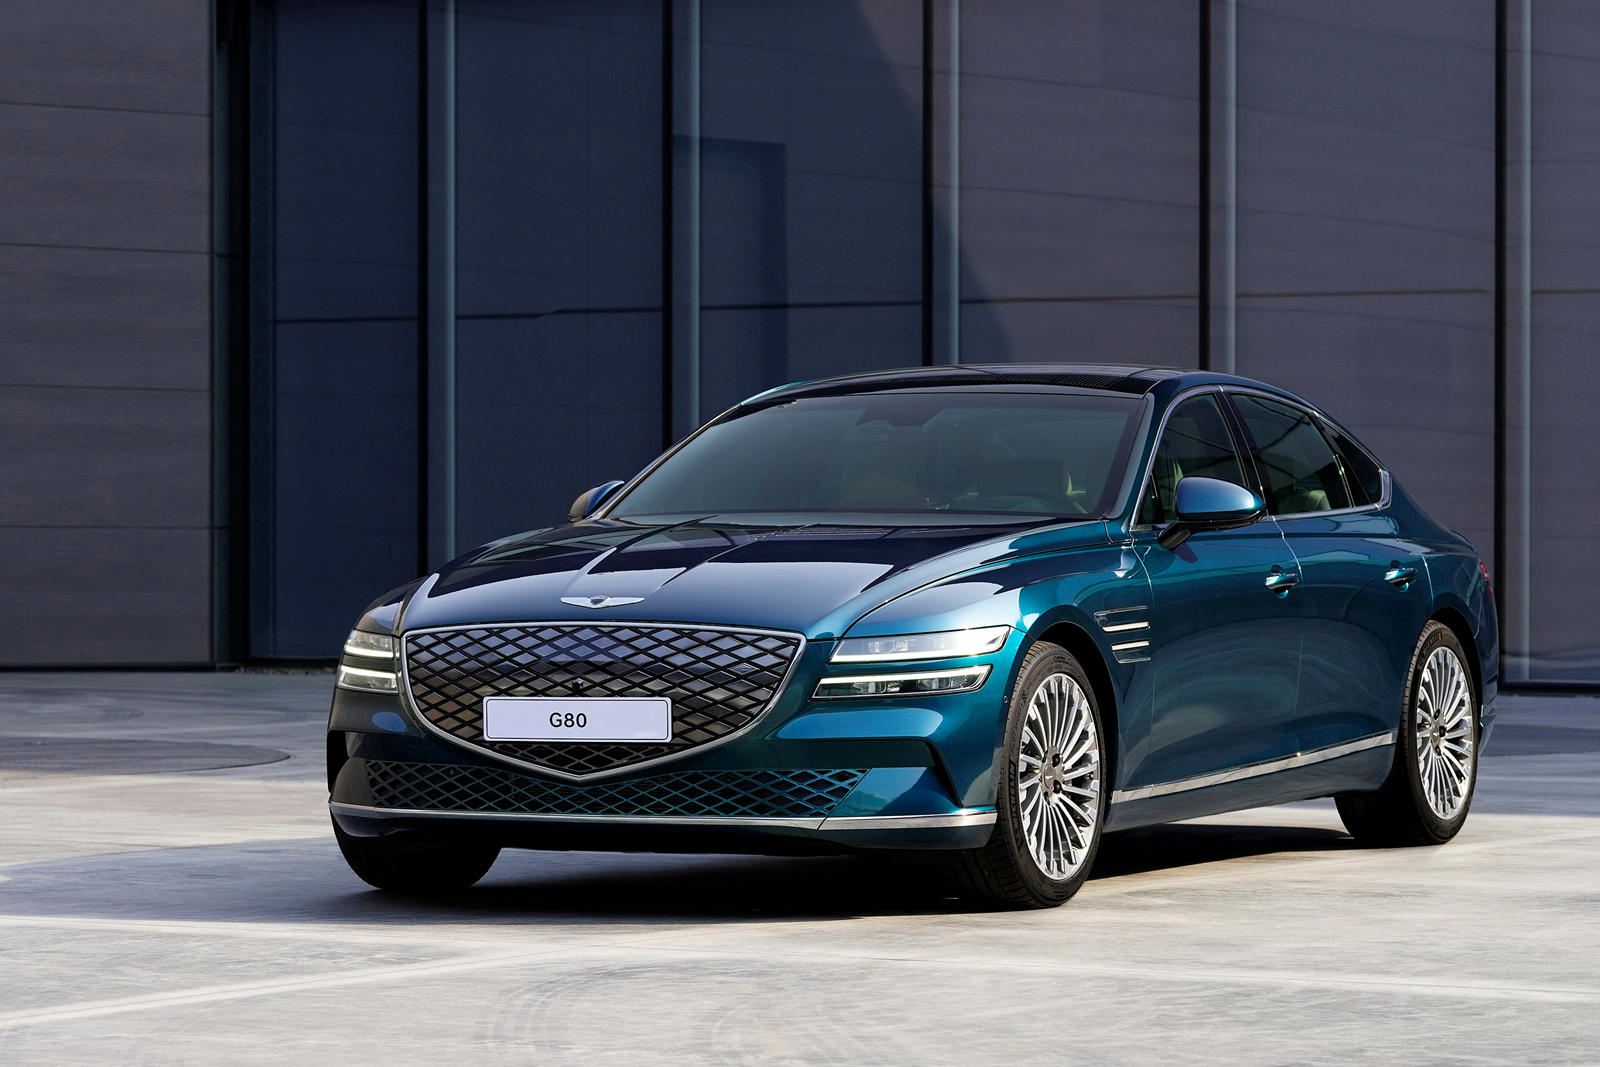 2022 Genesis Electrified G80 Reviews Trims Specifications Prices New Interior Features Exterior Designs And Specifications Autobala